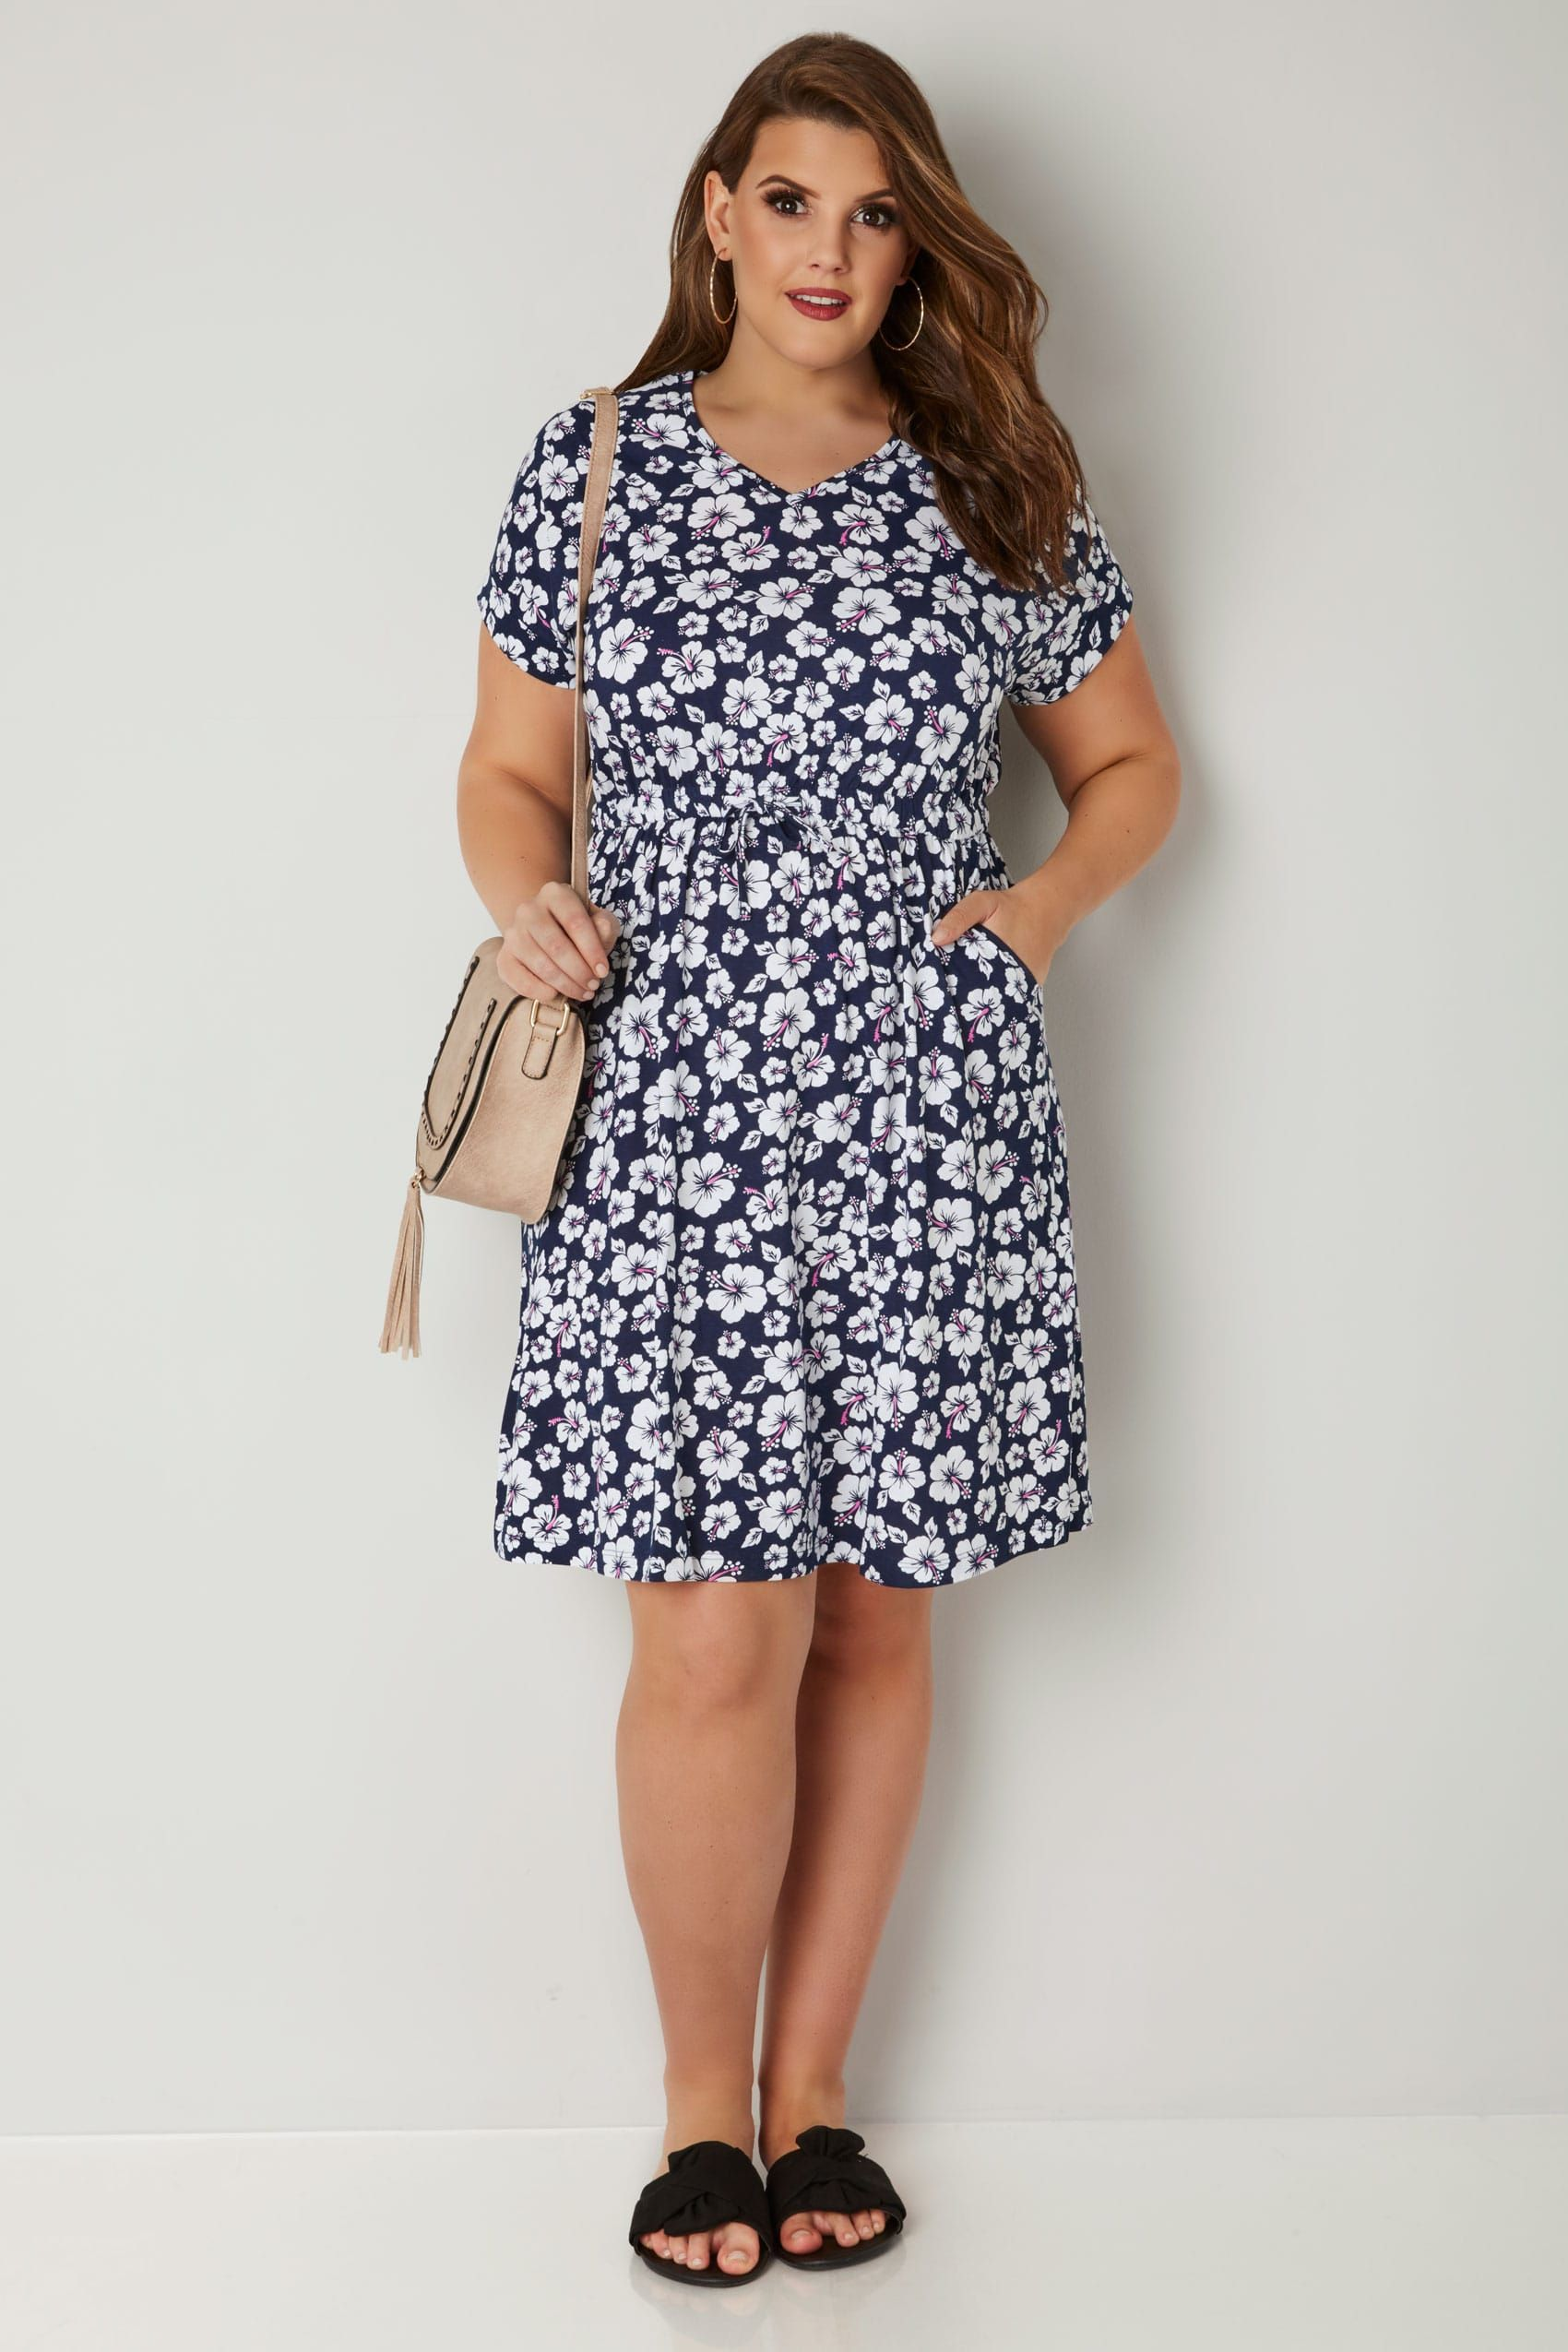 Navy White Floral Print T Shirt Dress With Pockets Elasticated Waistband Plus Size 16 To 3 Plus Size Skater Dress Fit N Flare Dress Plus Size Gowns Formal [ 2550 x 1700 Pixel ]